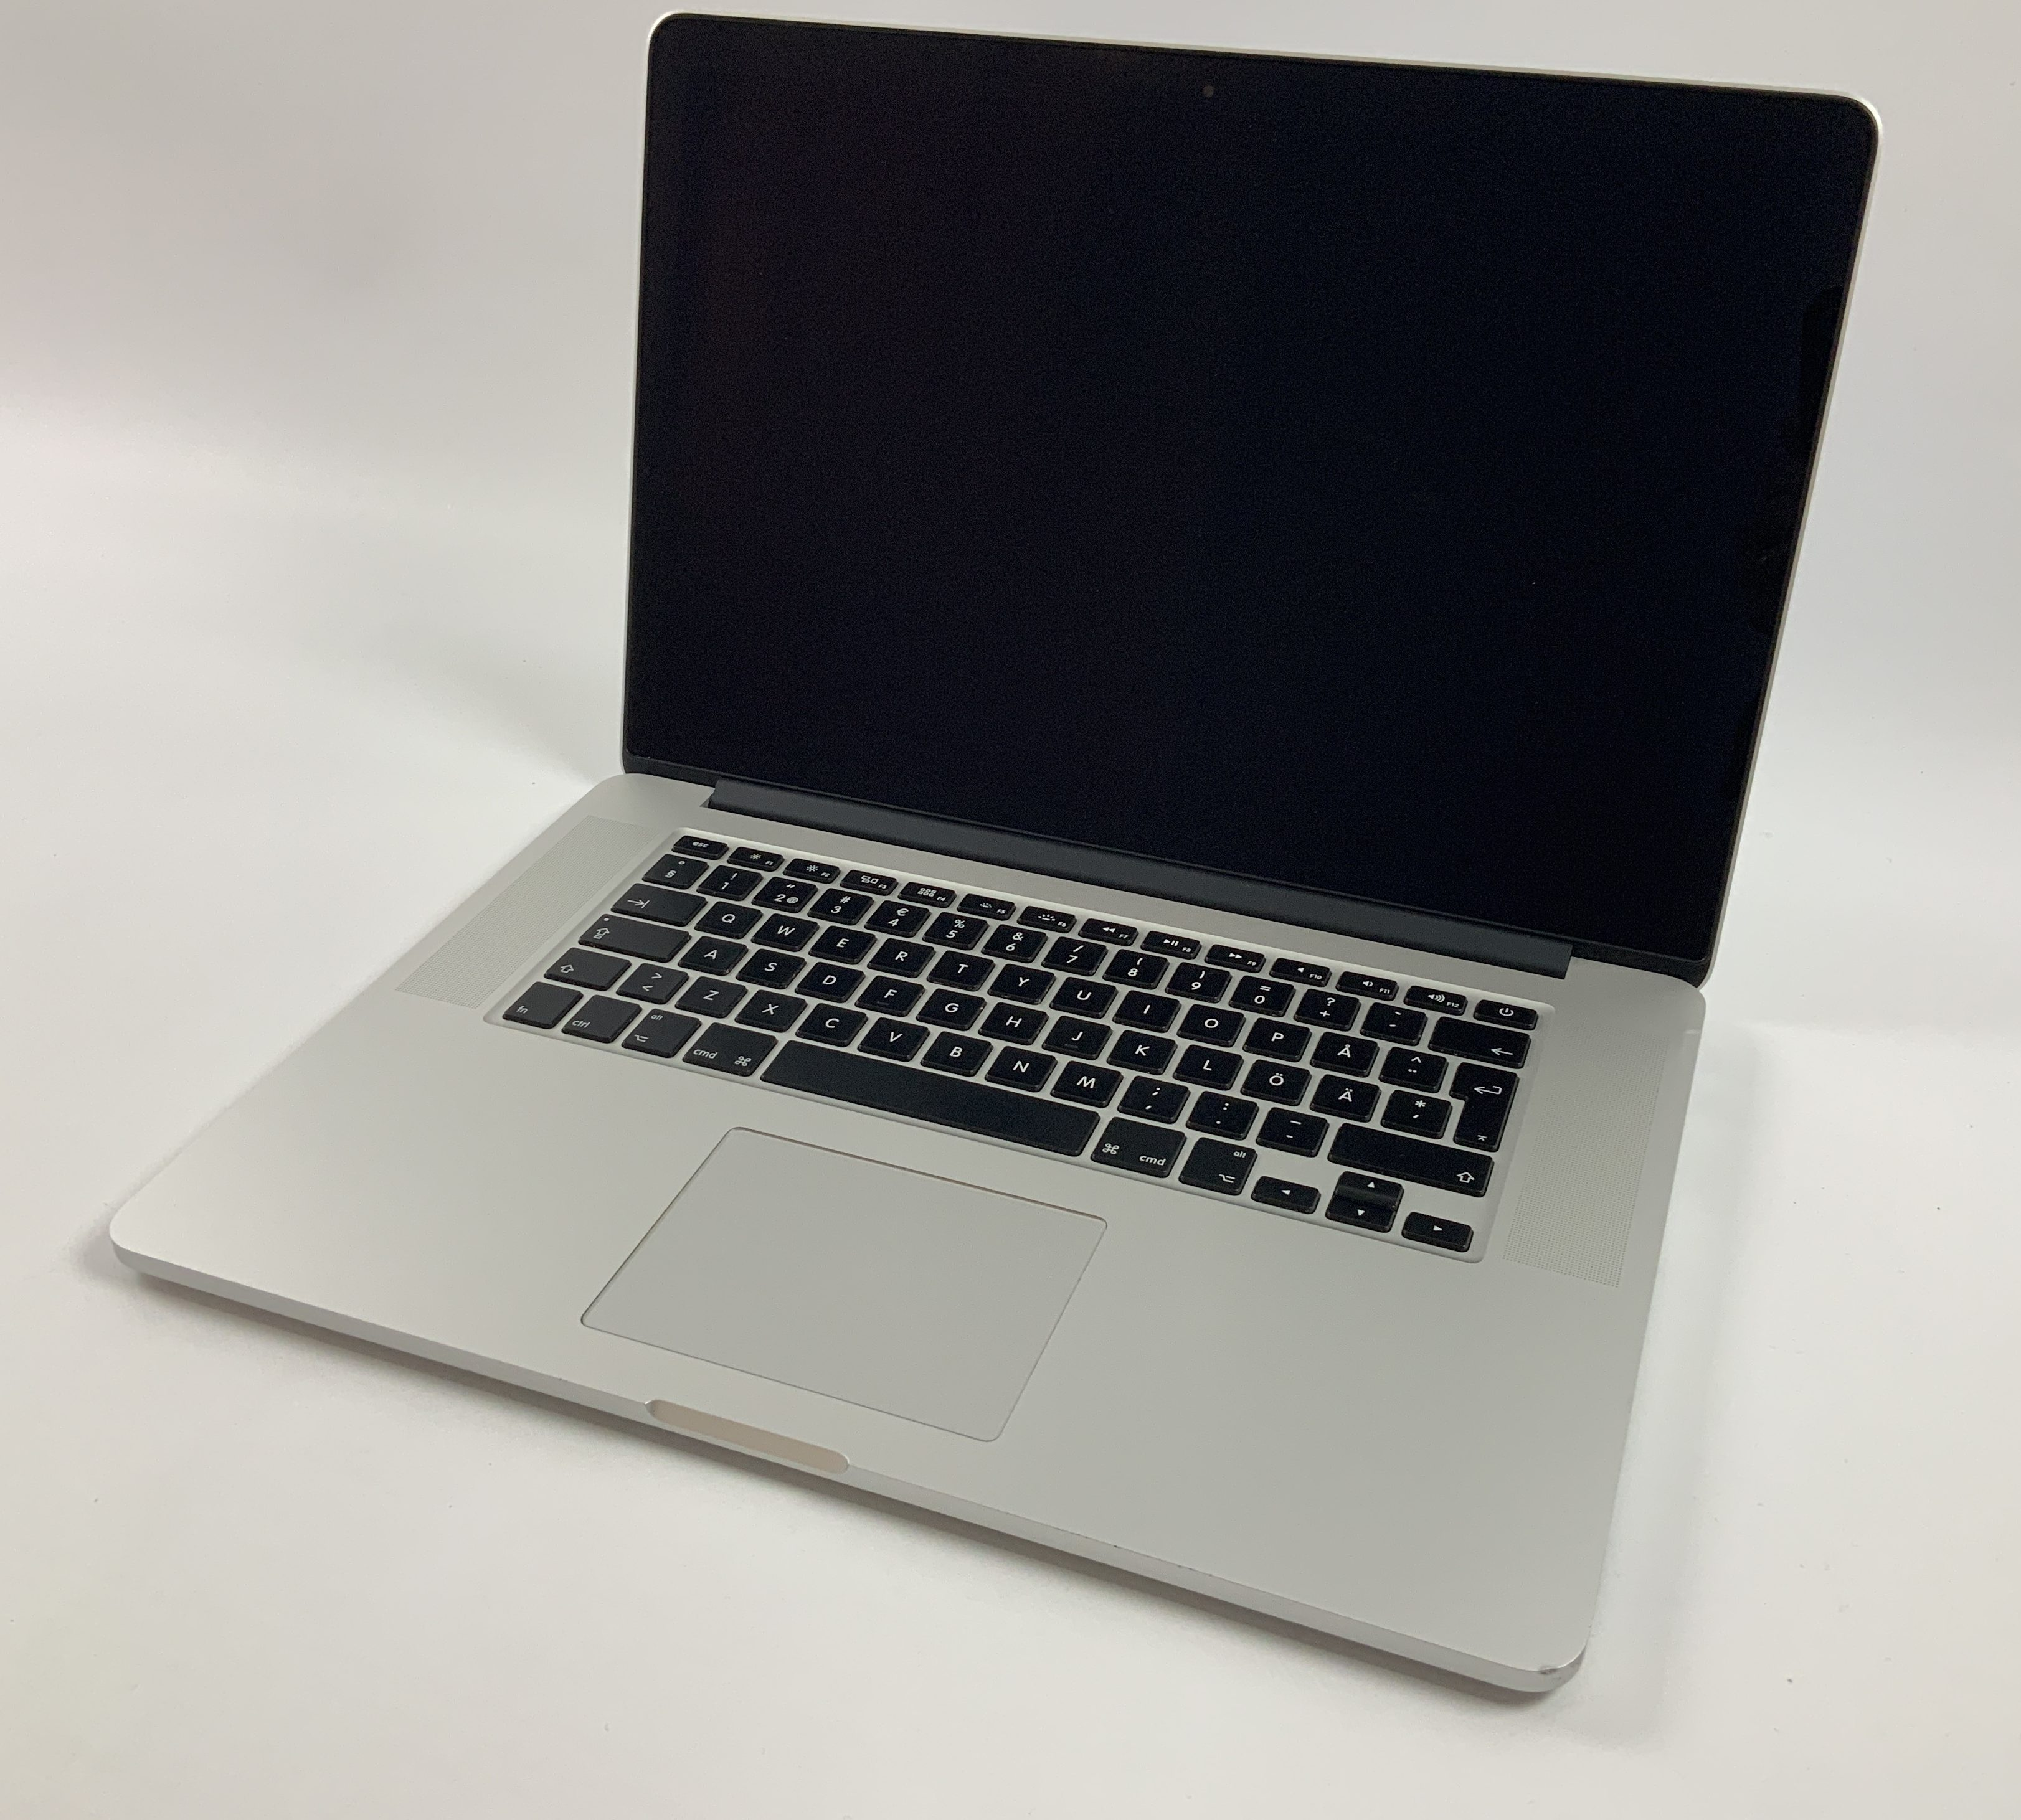 "MacBook Pro Retina 15"" Mid 2015 (Intel Quad-Core i7 2.8 GHz 16 GB RAM 512 GB SSD), Intel Quad-Core i7 2.8 GHz, 16 GB RAM, 512 GB SSD, Bild 1"